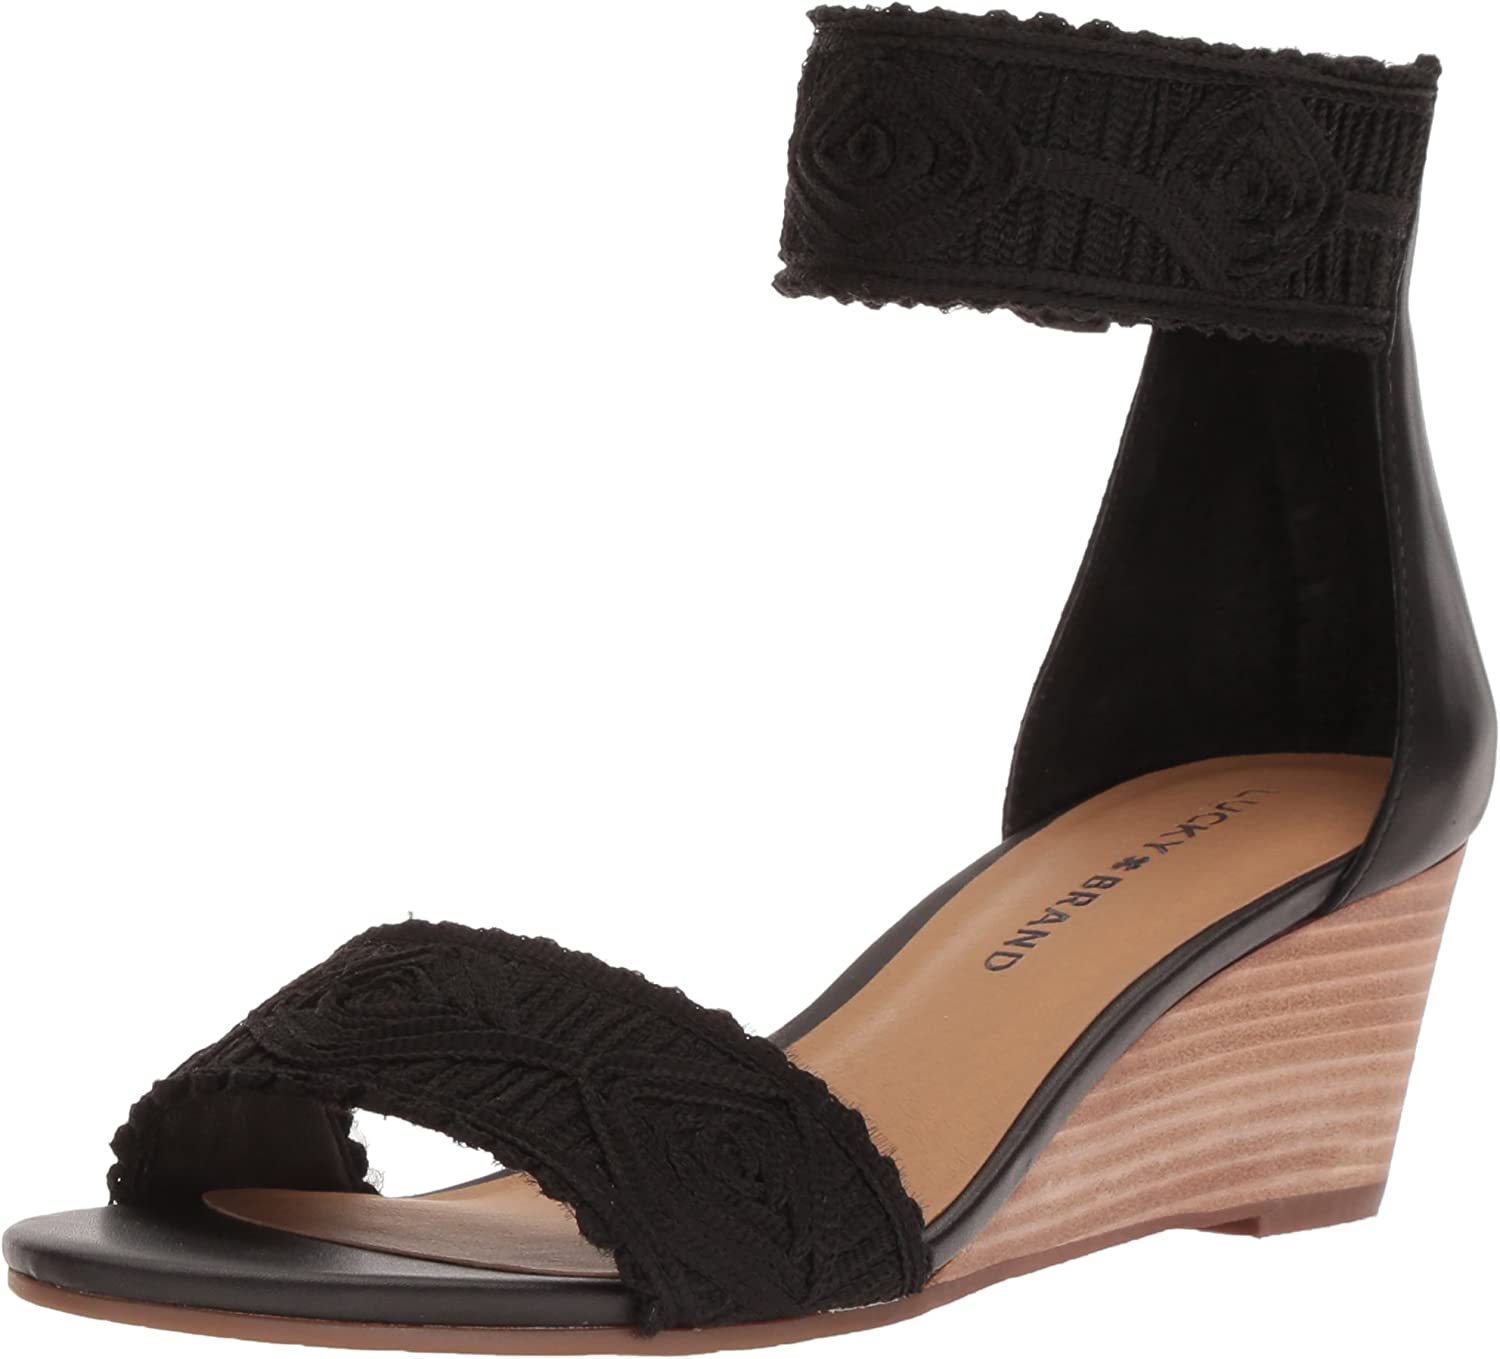 Lucky Brand Womens Joshelle Wedge Sandal